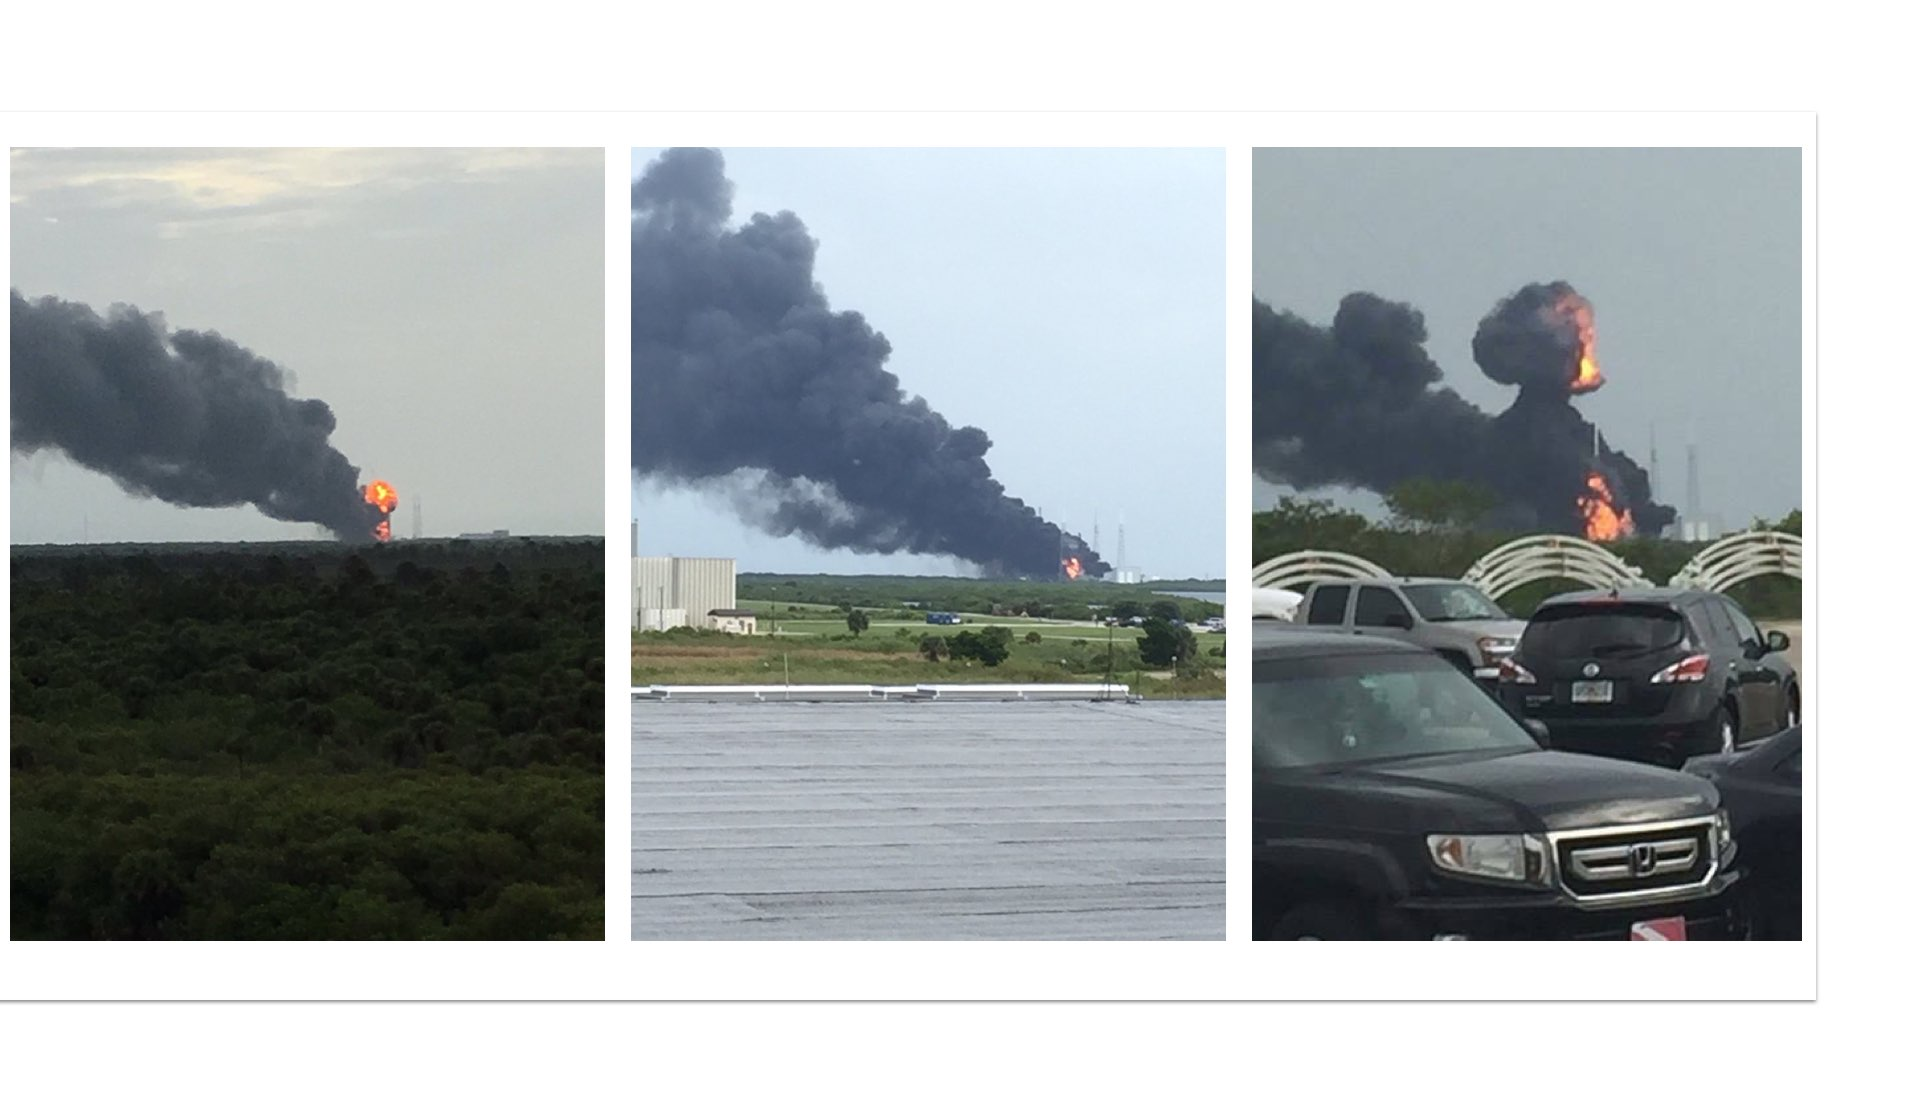 SpaceX - explosion